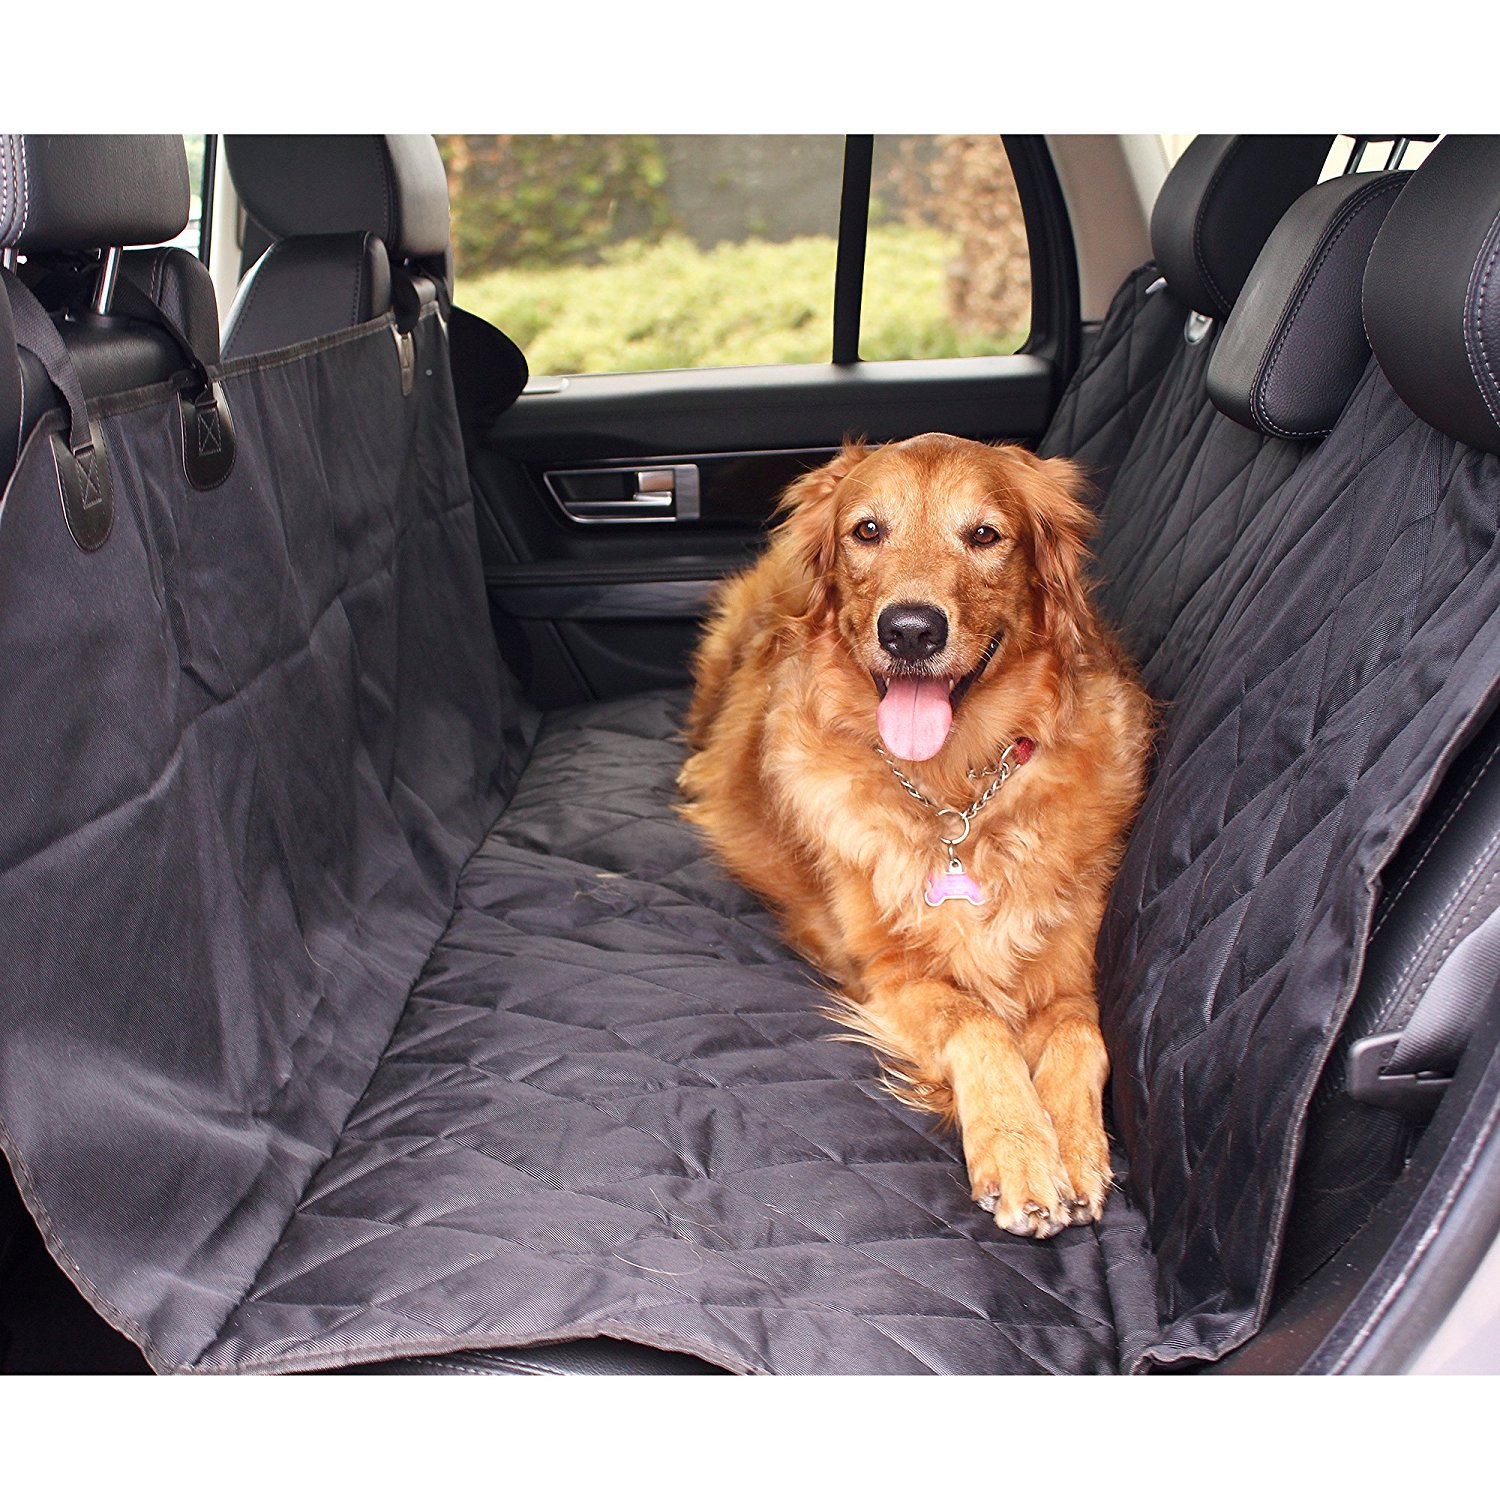 Pet Dog Bench Car Seat Cover for Auto SUV Truck Waterproof Storage Fits: Seat